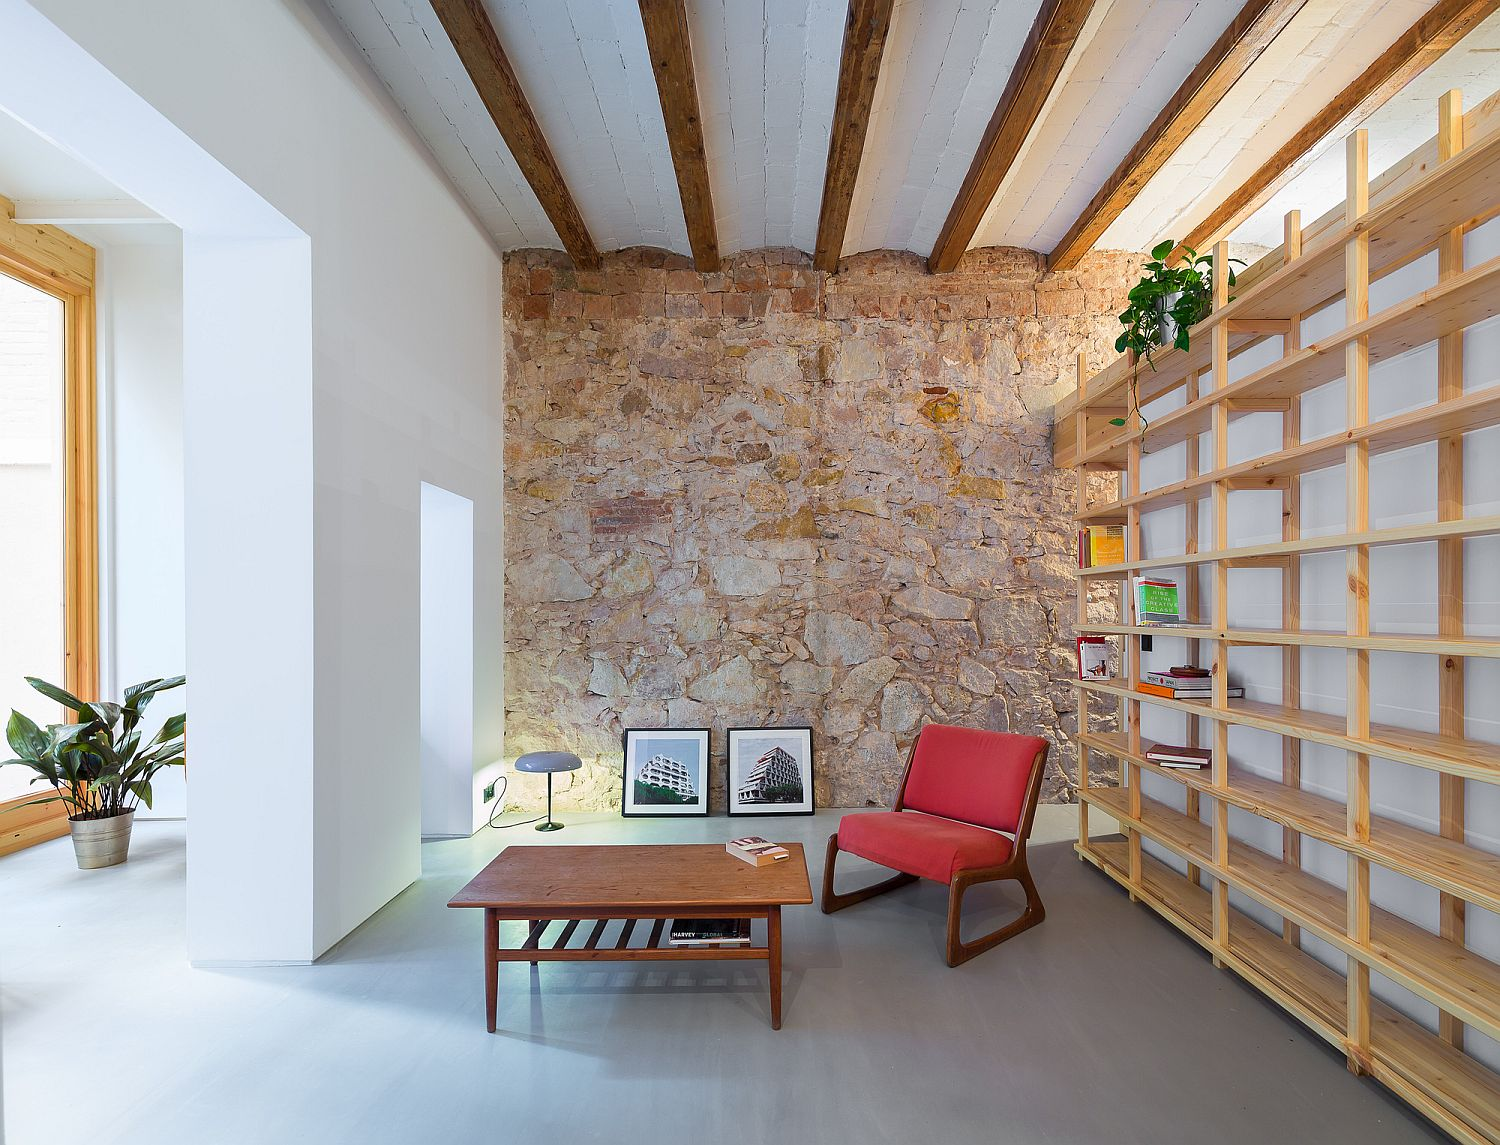 Existing walls and ceiling wooden beams bring in original charm of the Barcelona apartment Breezy Revamp: Small Apartment in Barcelona Serves as a Relaxing Second Home